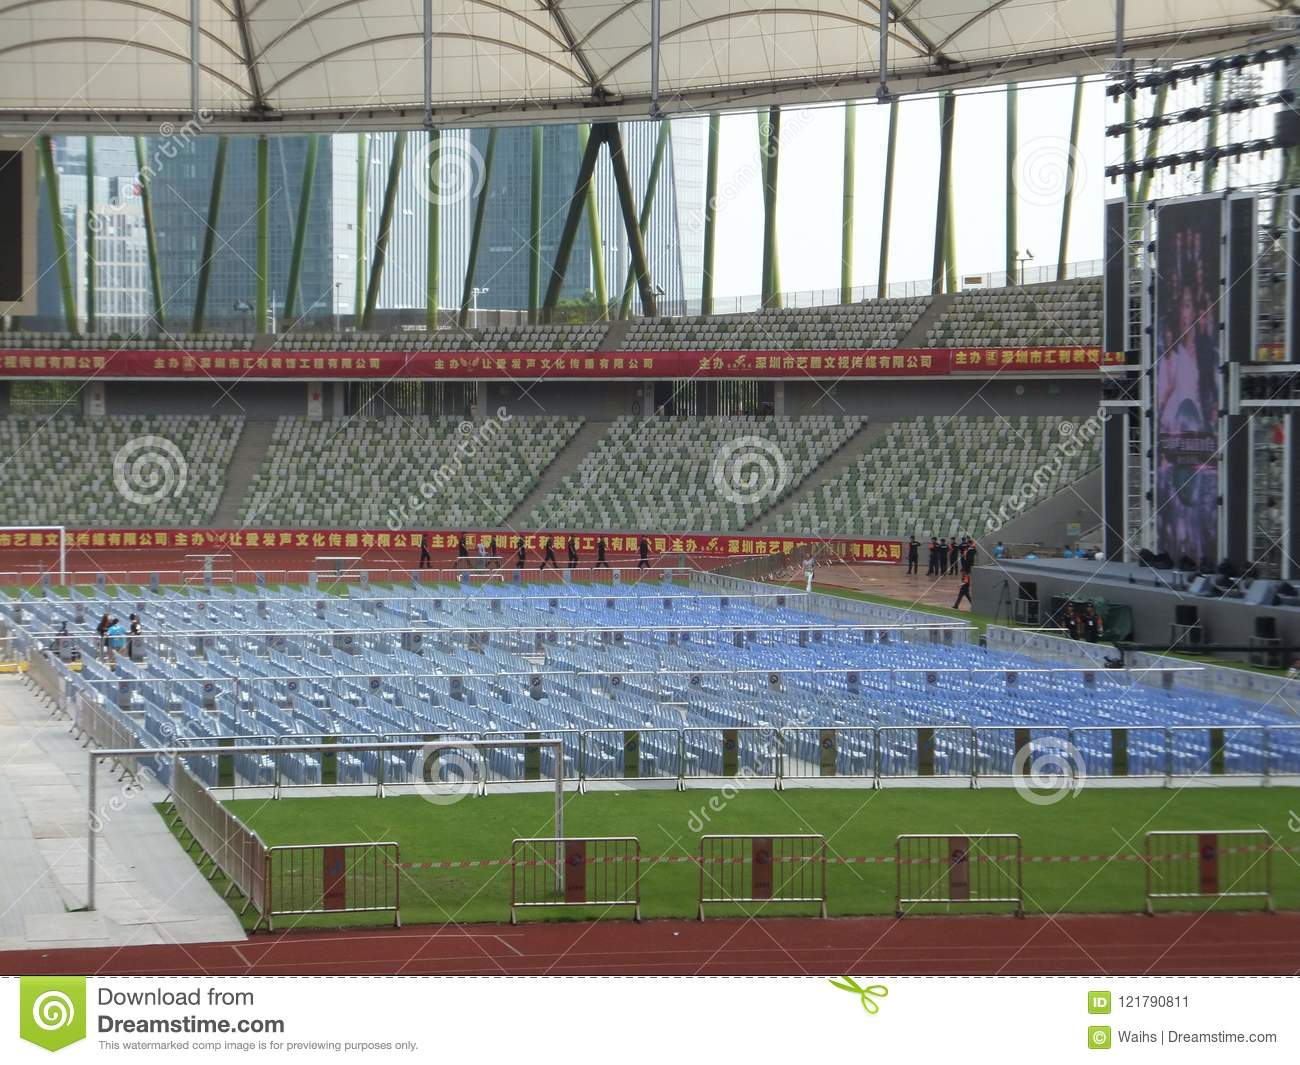 Shenzhen, China: a big concert is held in the stadium